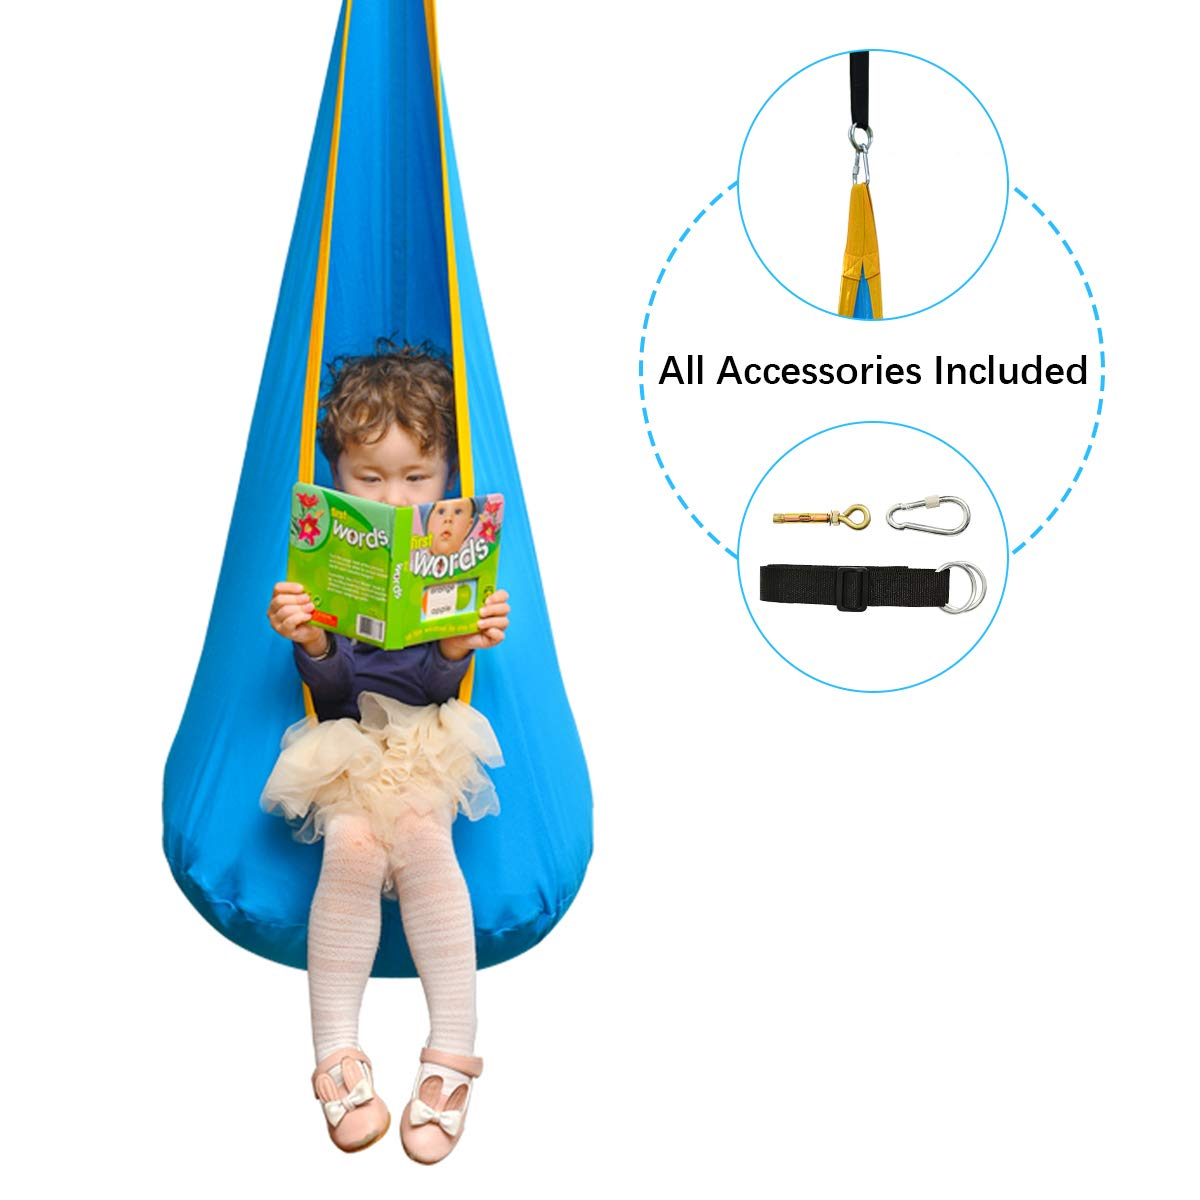 Cchainway Folding Hanging Pod Swing Seat Child Swing Chair Indoor and Outdoor Hammock Chair for Kids, 100 Cotton Hardware Accessories Included Blue